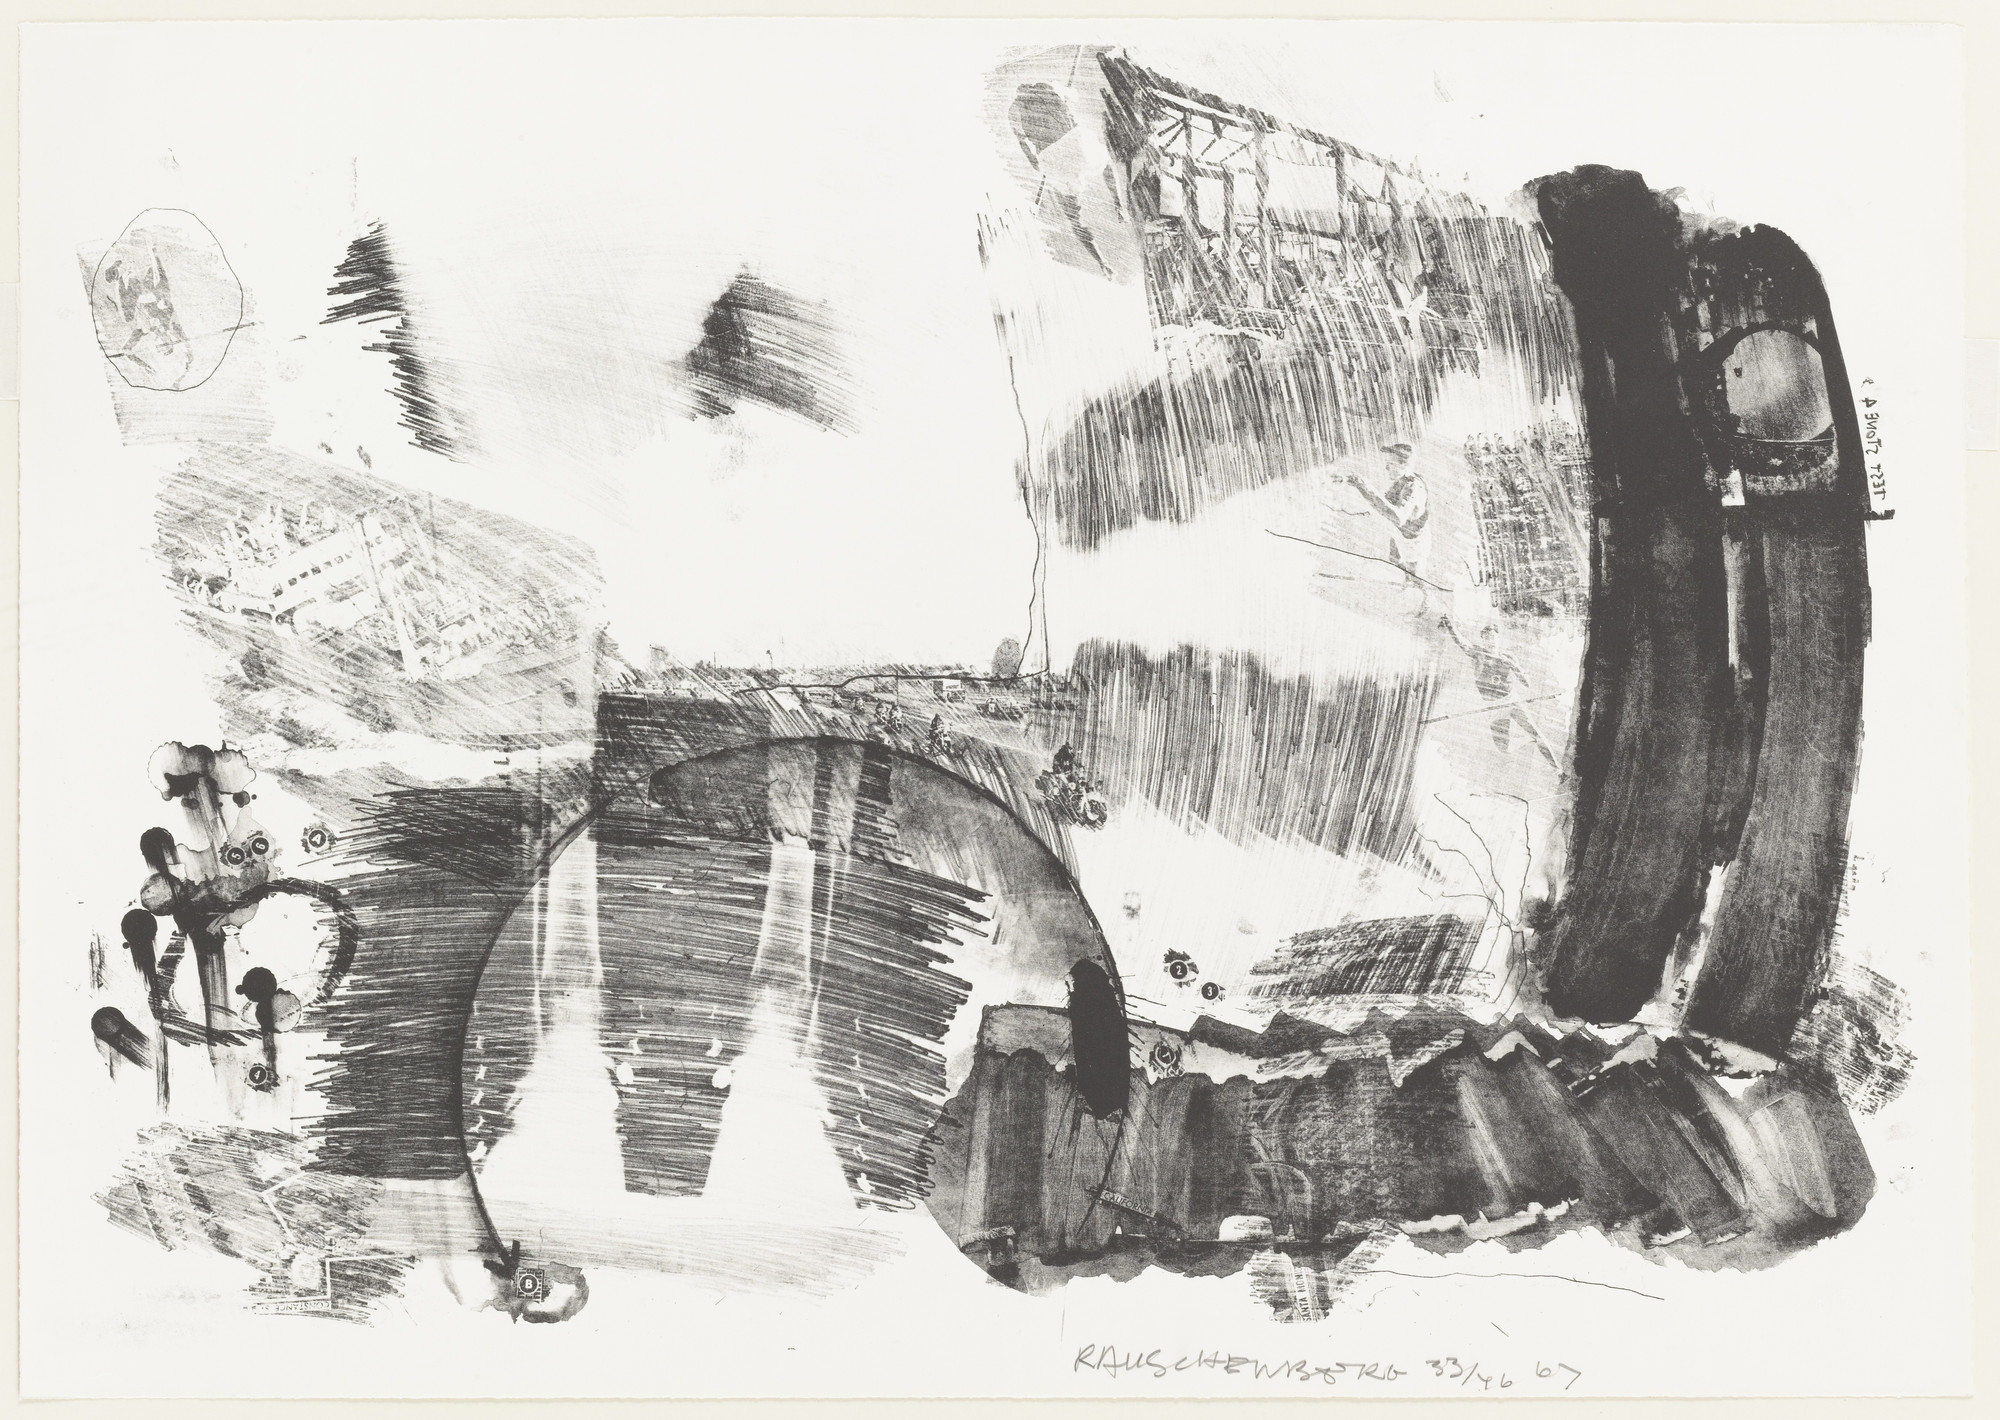 Robert Rauschenberg. Test Stone #4 from Booster and 7 Studies. 1967